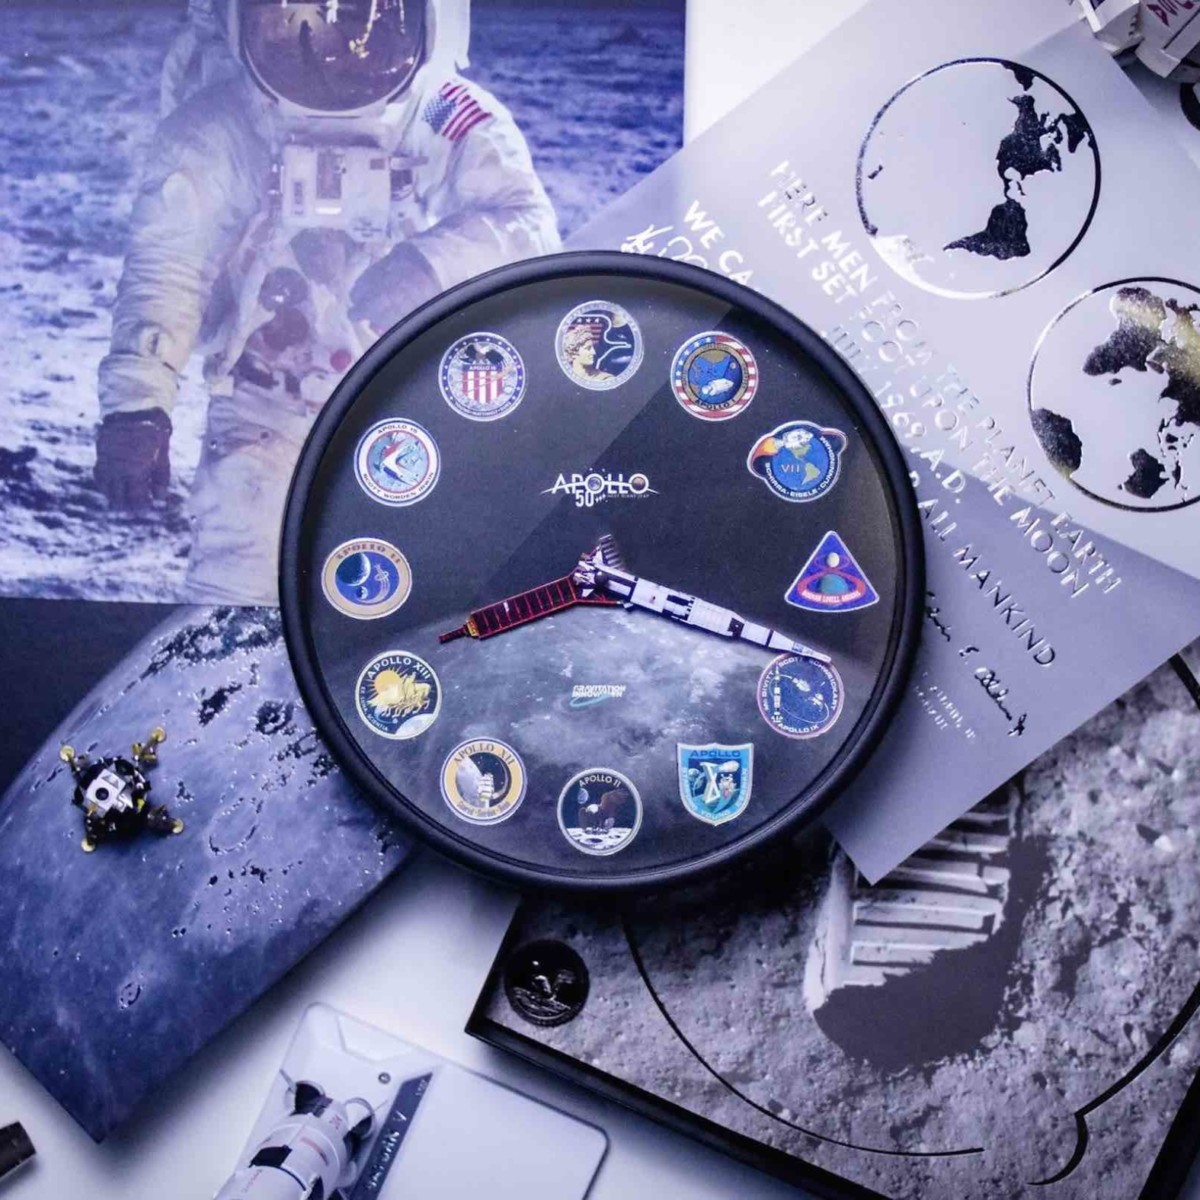 Apollo AR Clock & Saturn V AR Metal Model Moon Landing Anniversary Devices bring the lifelike experience to your desk